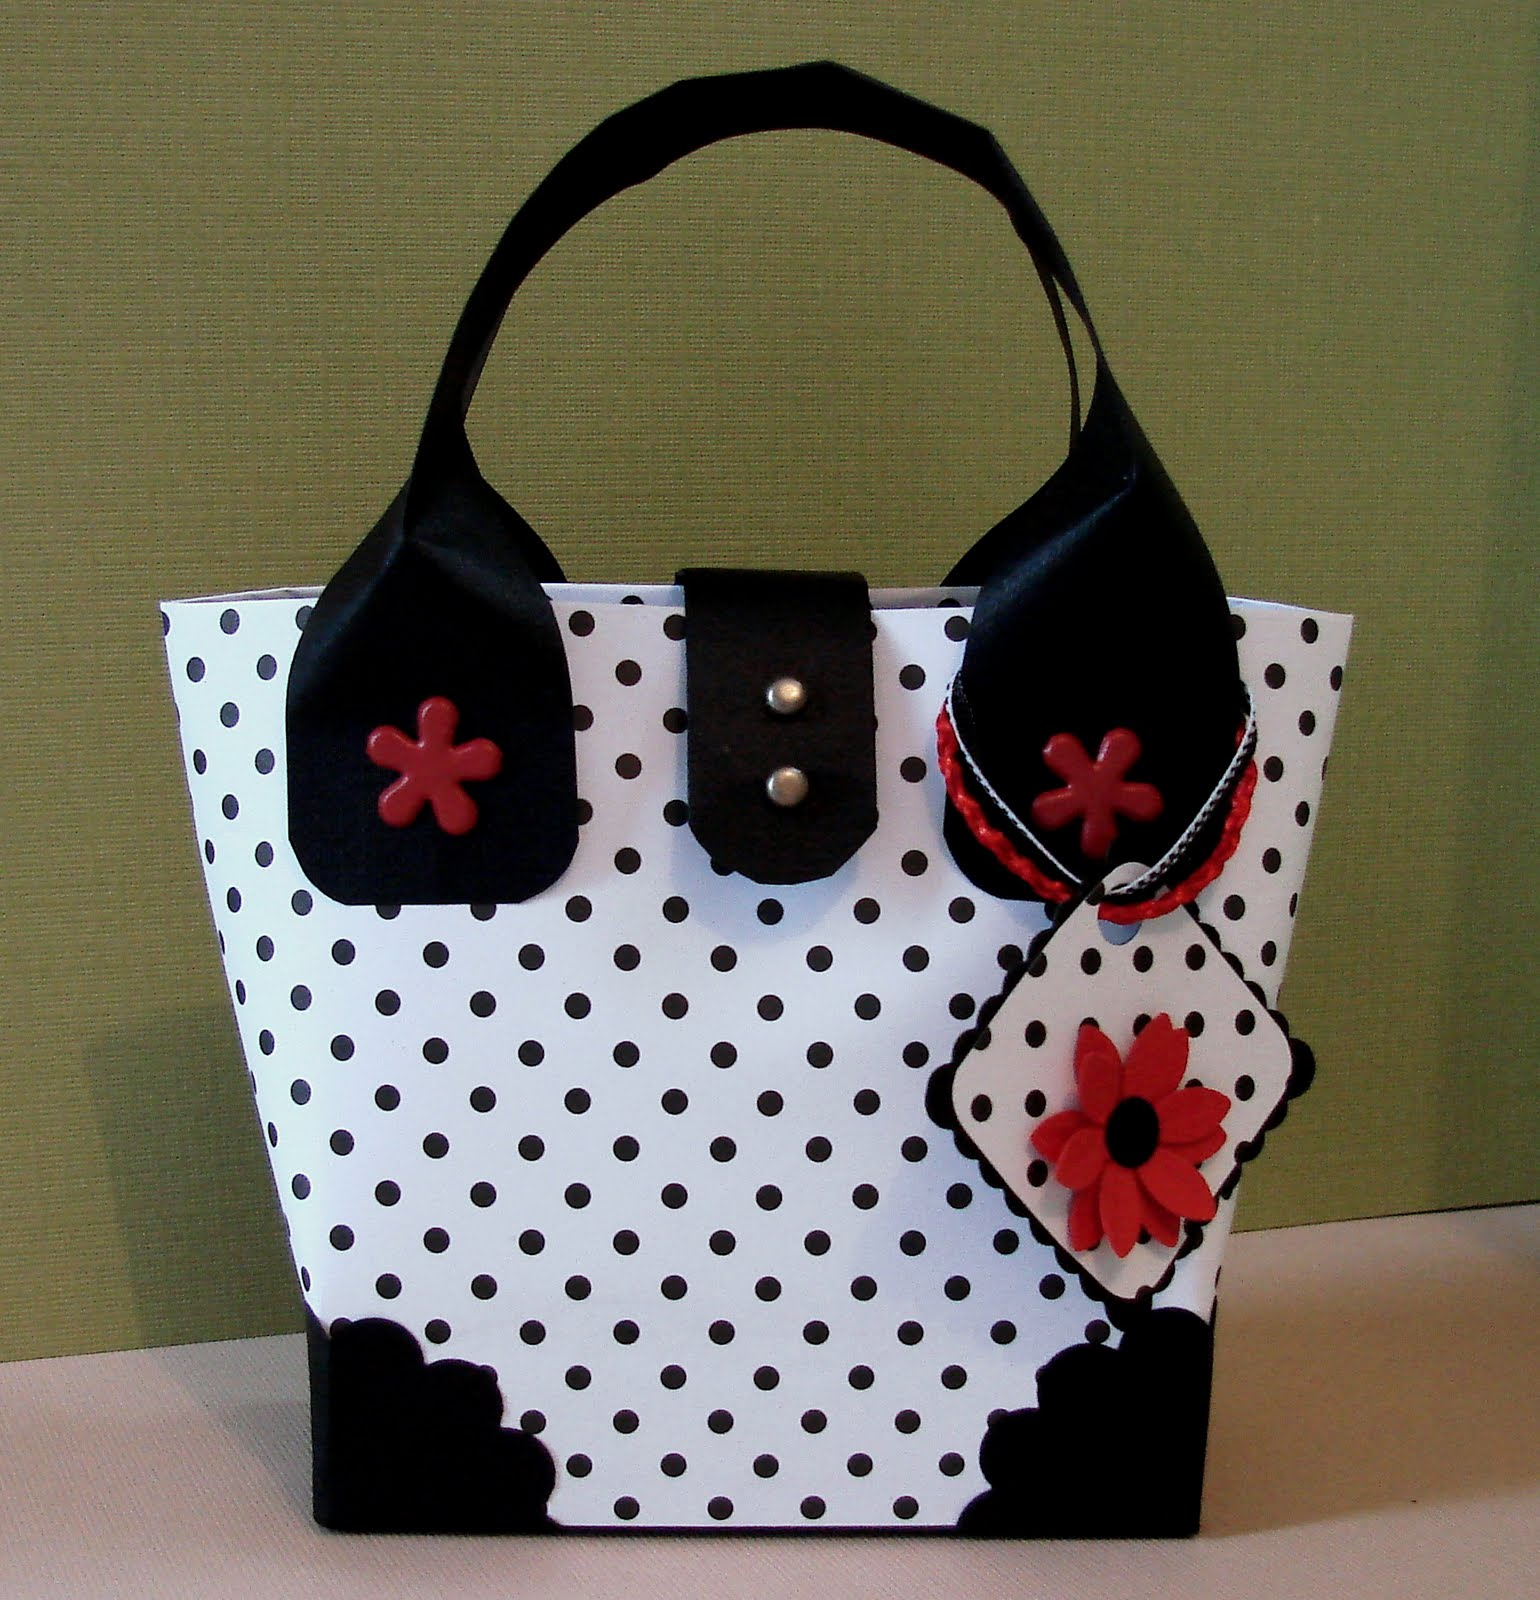 Find great deals on eBay for cute little bags. Shop with confidence.